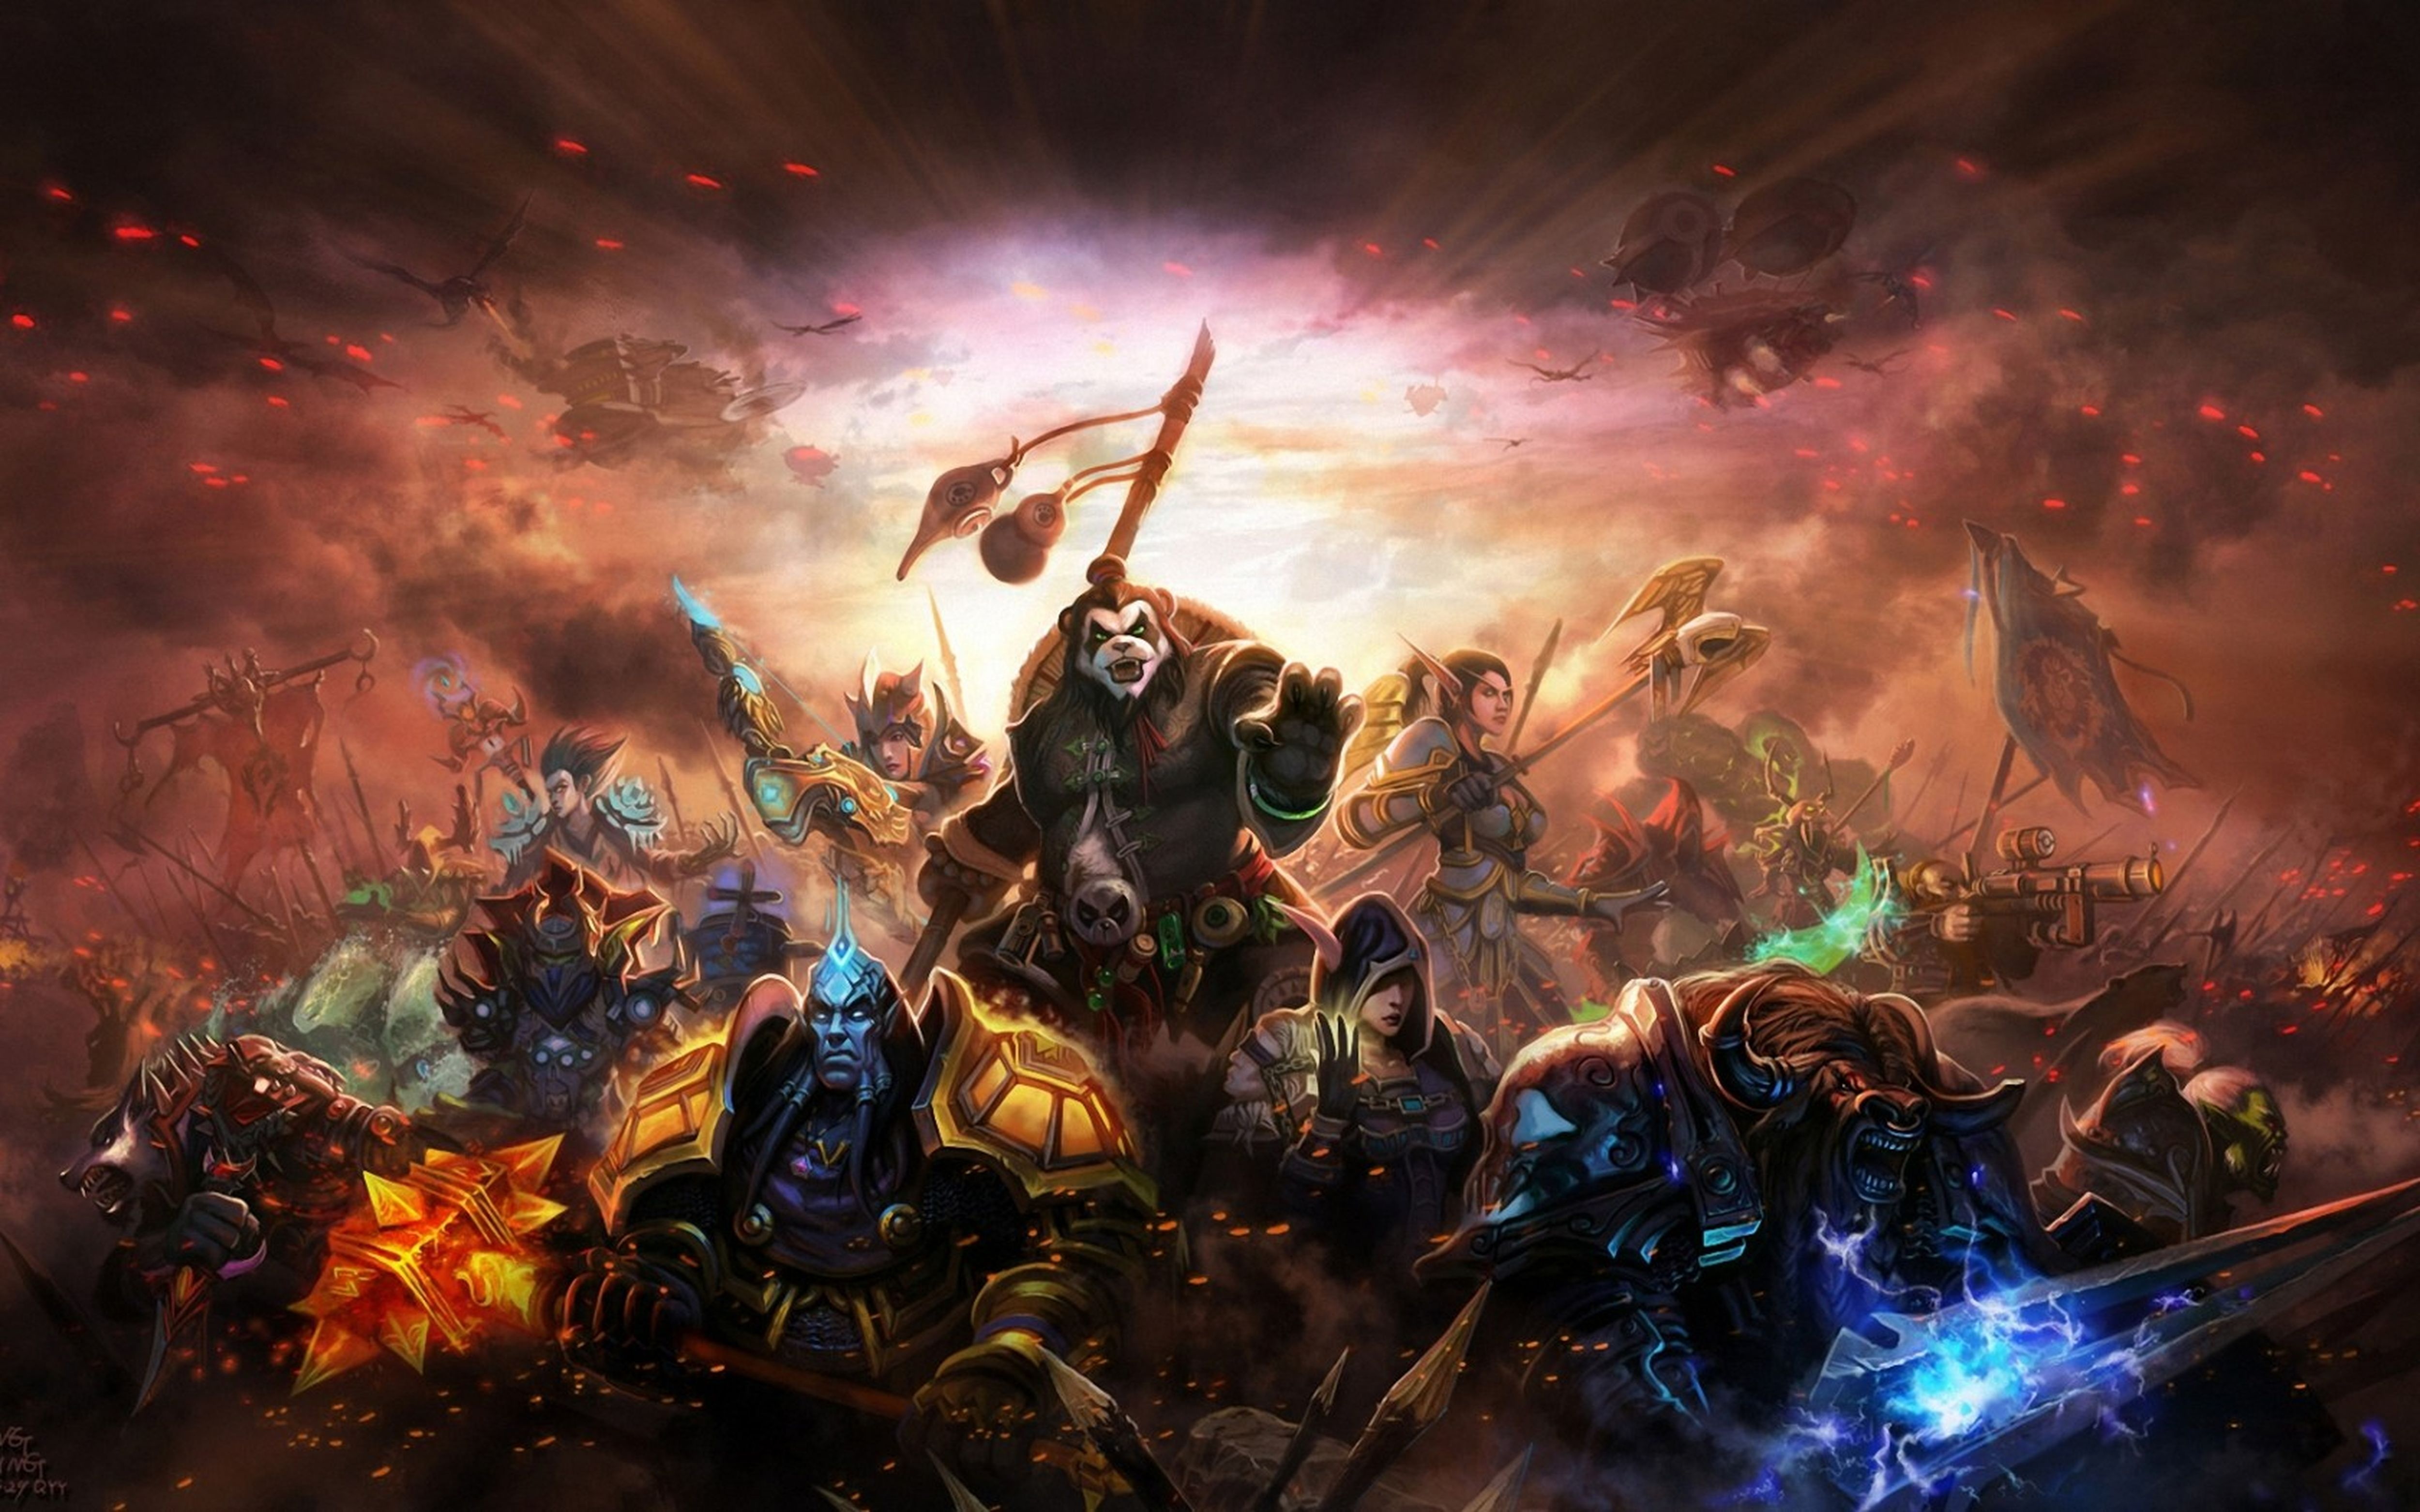 Free Download 69 World Of Warcraft Hd Wallpapers Backgrounds